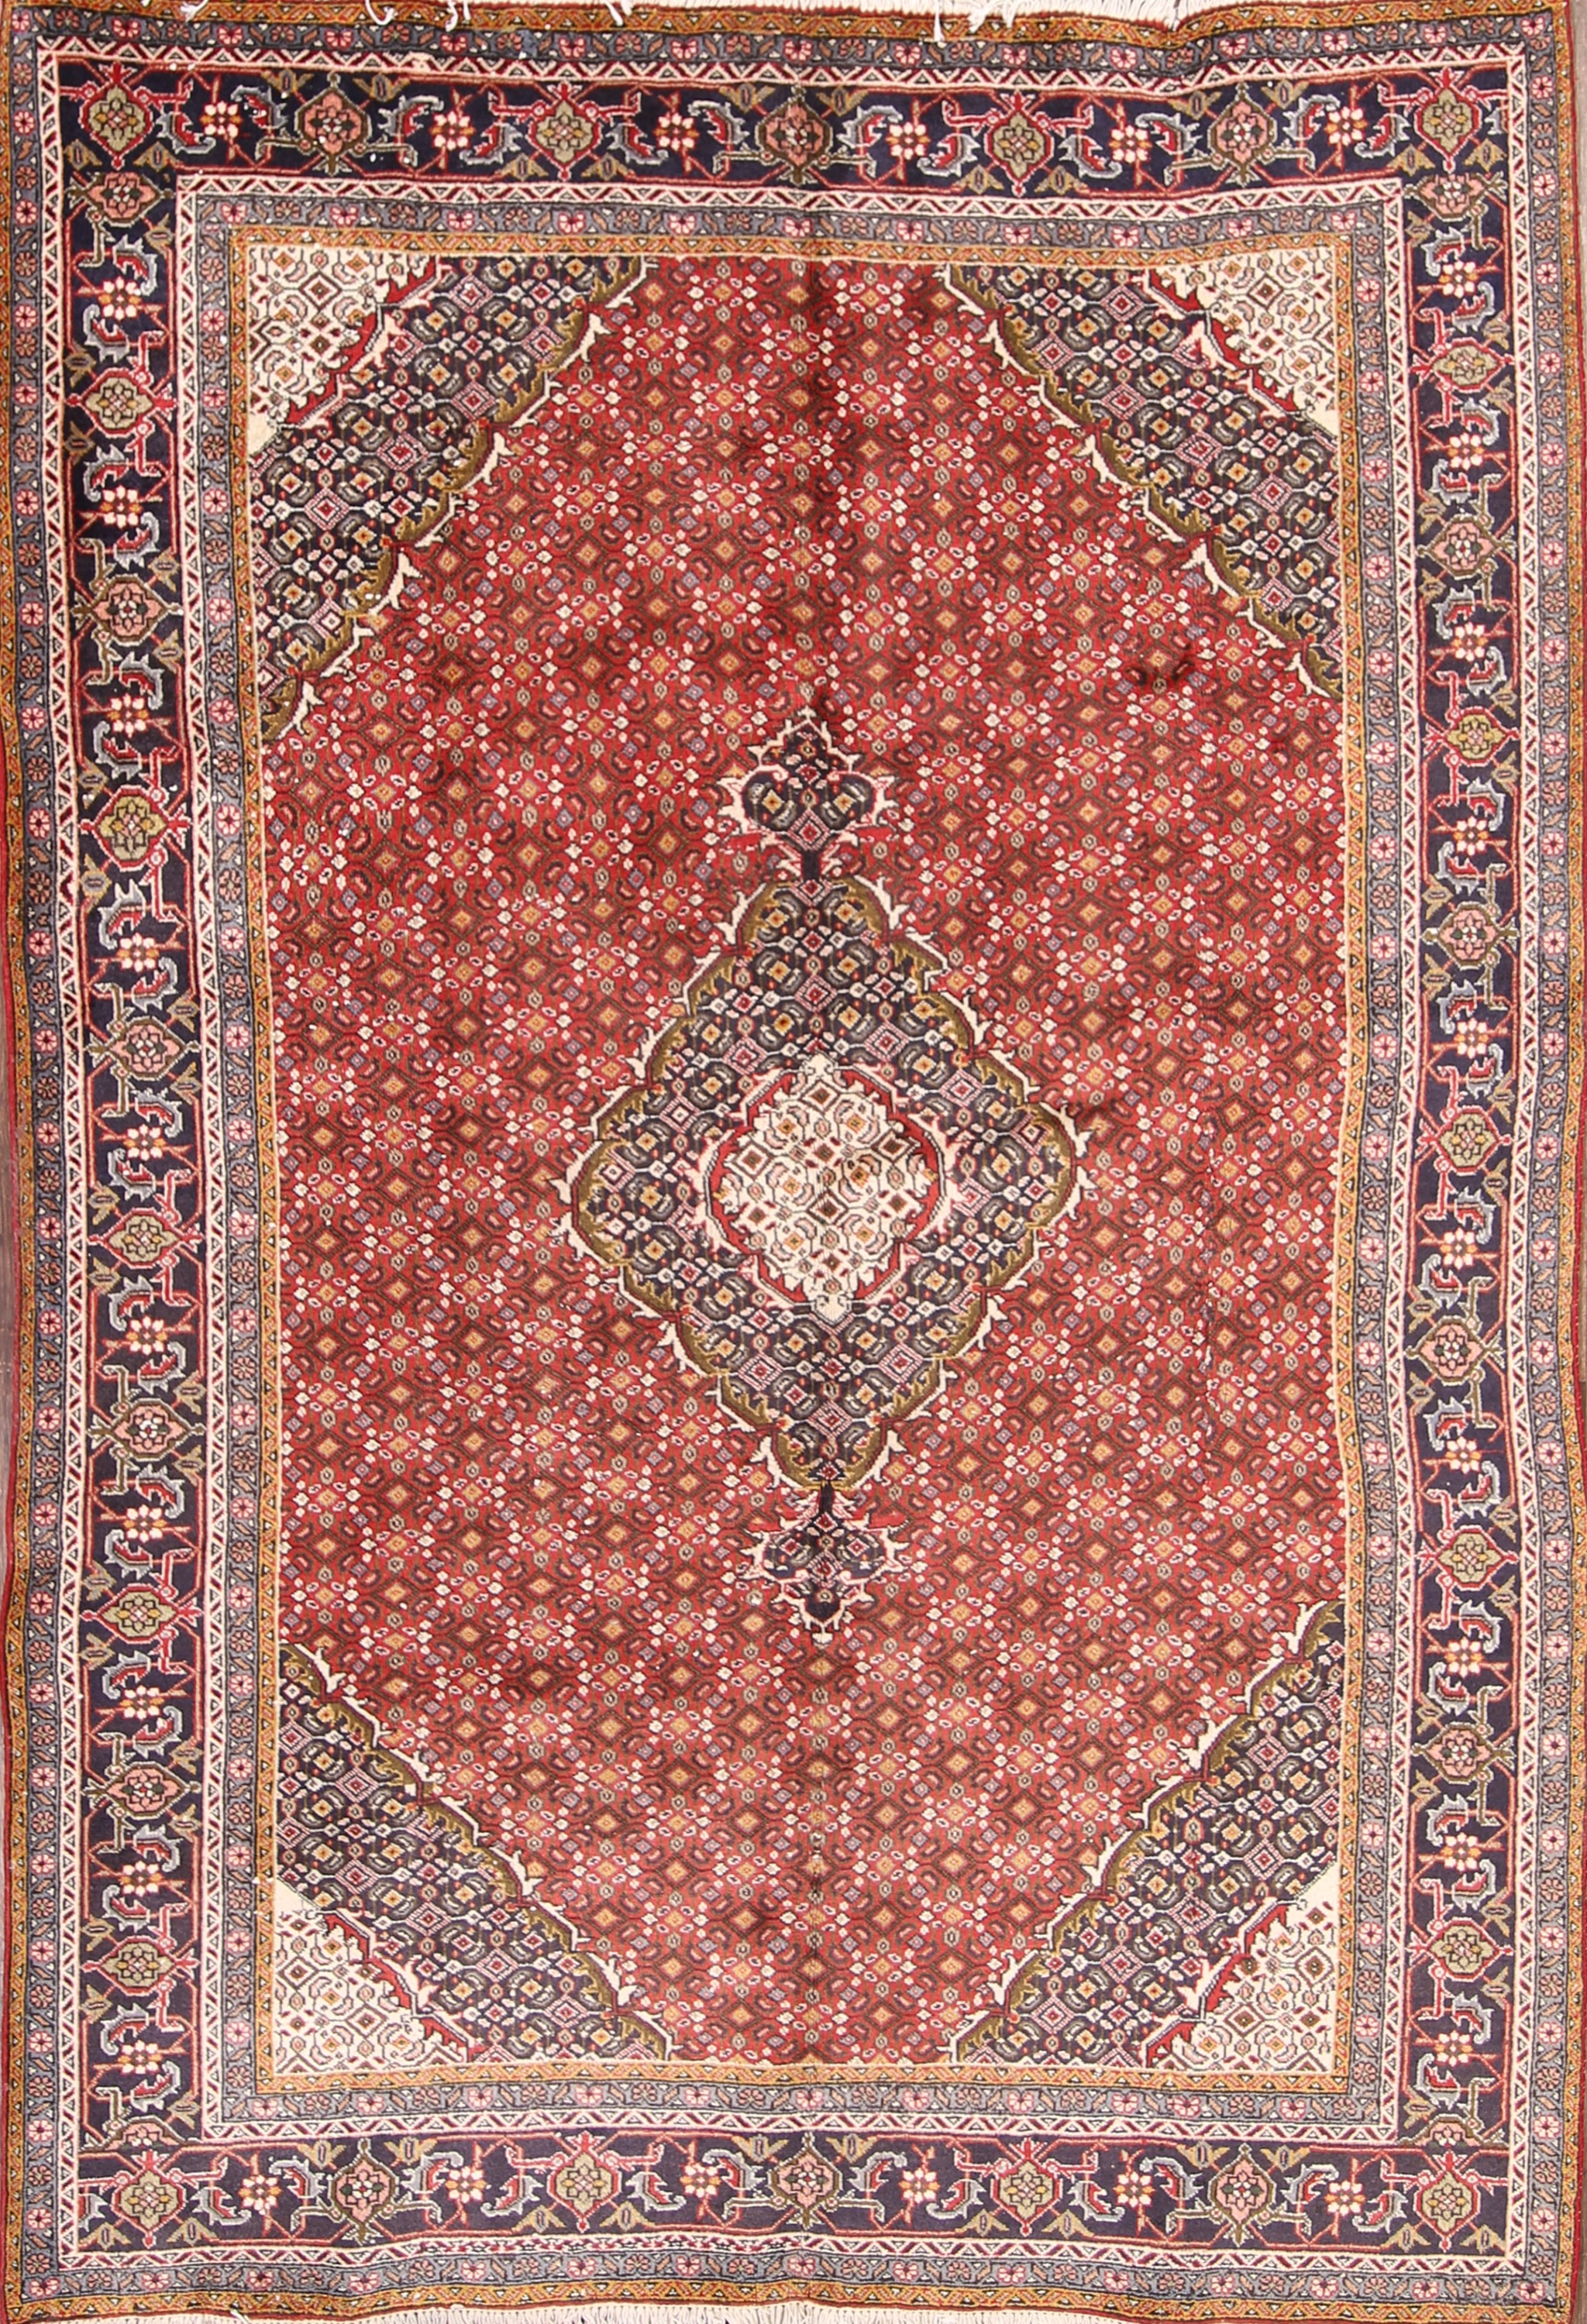 6x9 Area Rugs Amazoncom Luxury Red Silk Area Rugs For